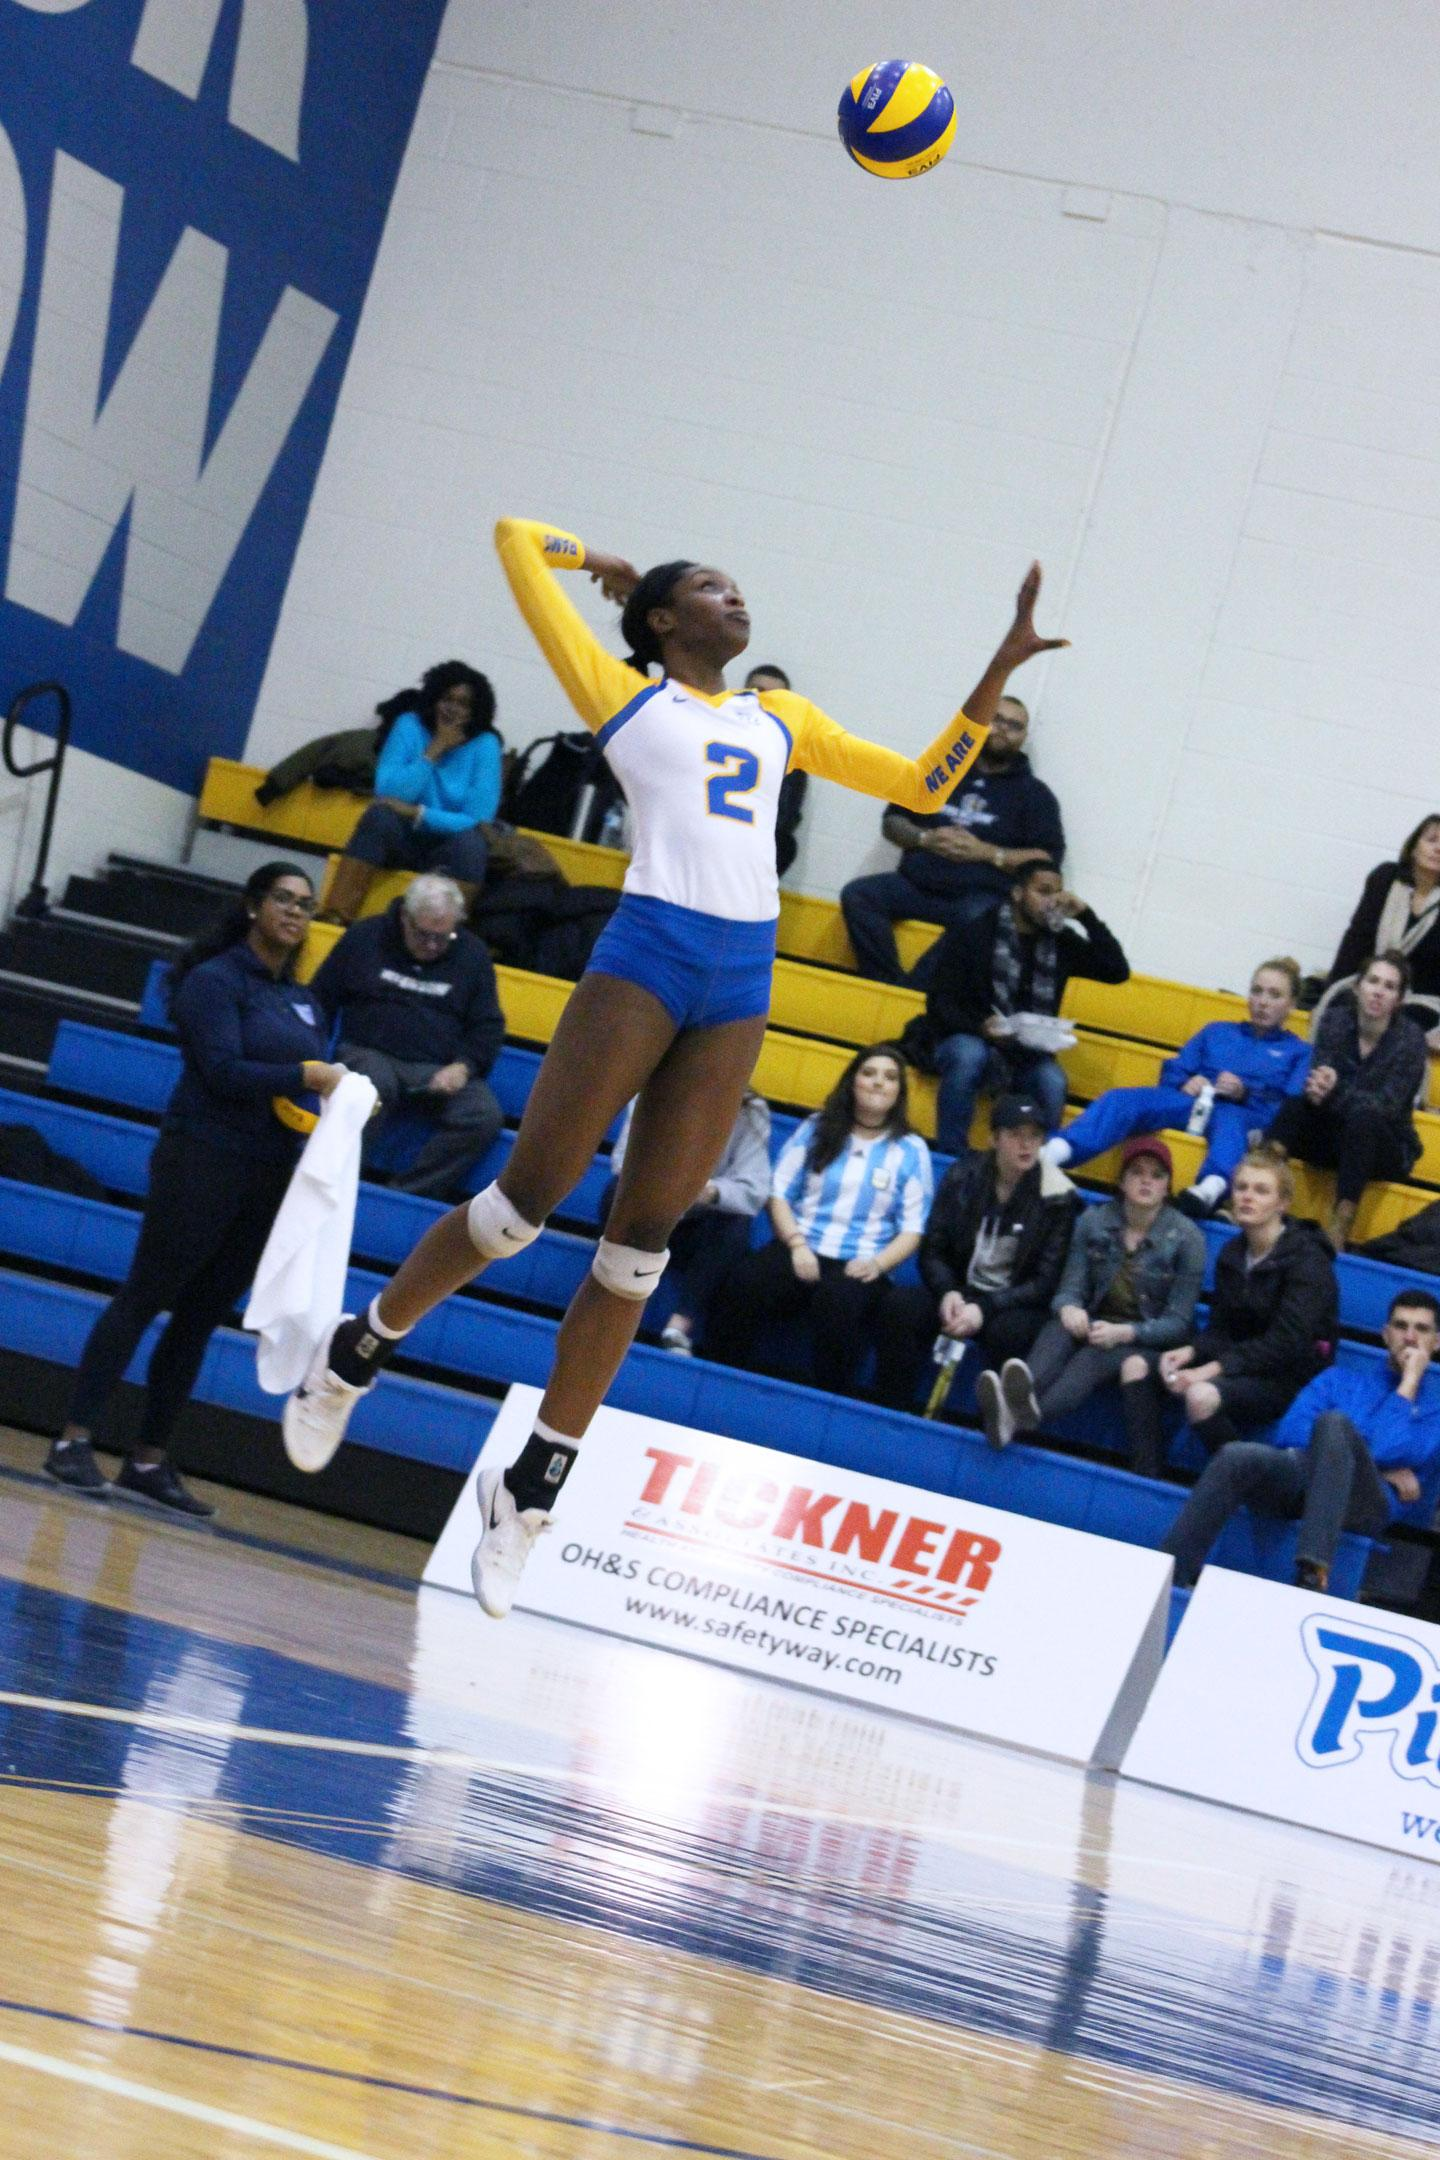 At the Womens Volleyball game, a Ryerson player jumps up to strike the ball.